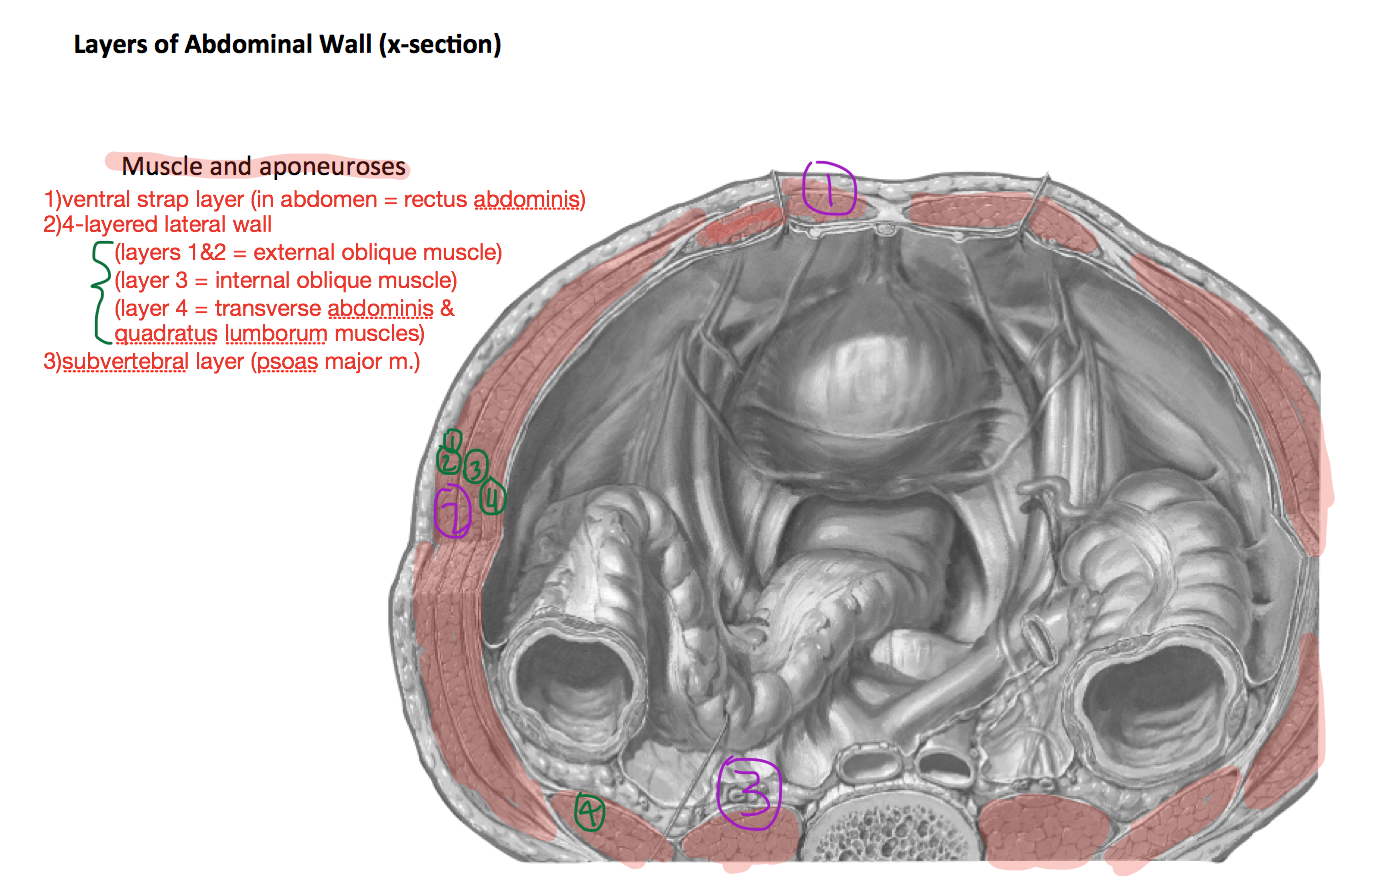 Week 6 Abdominal Wall Inguinal Region Anatomy Phase 1